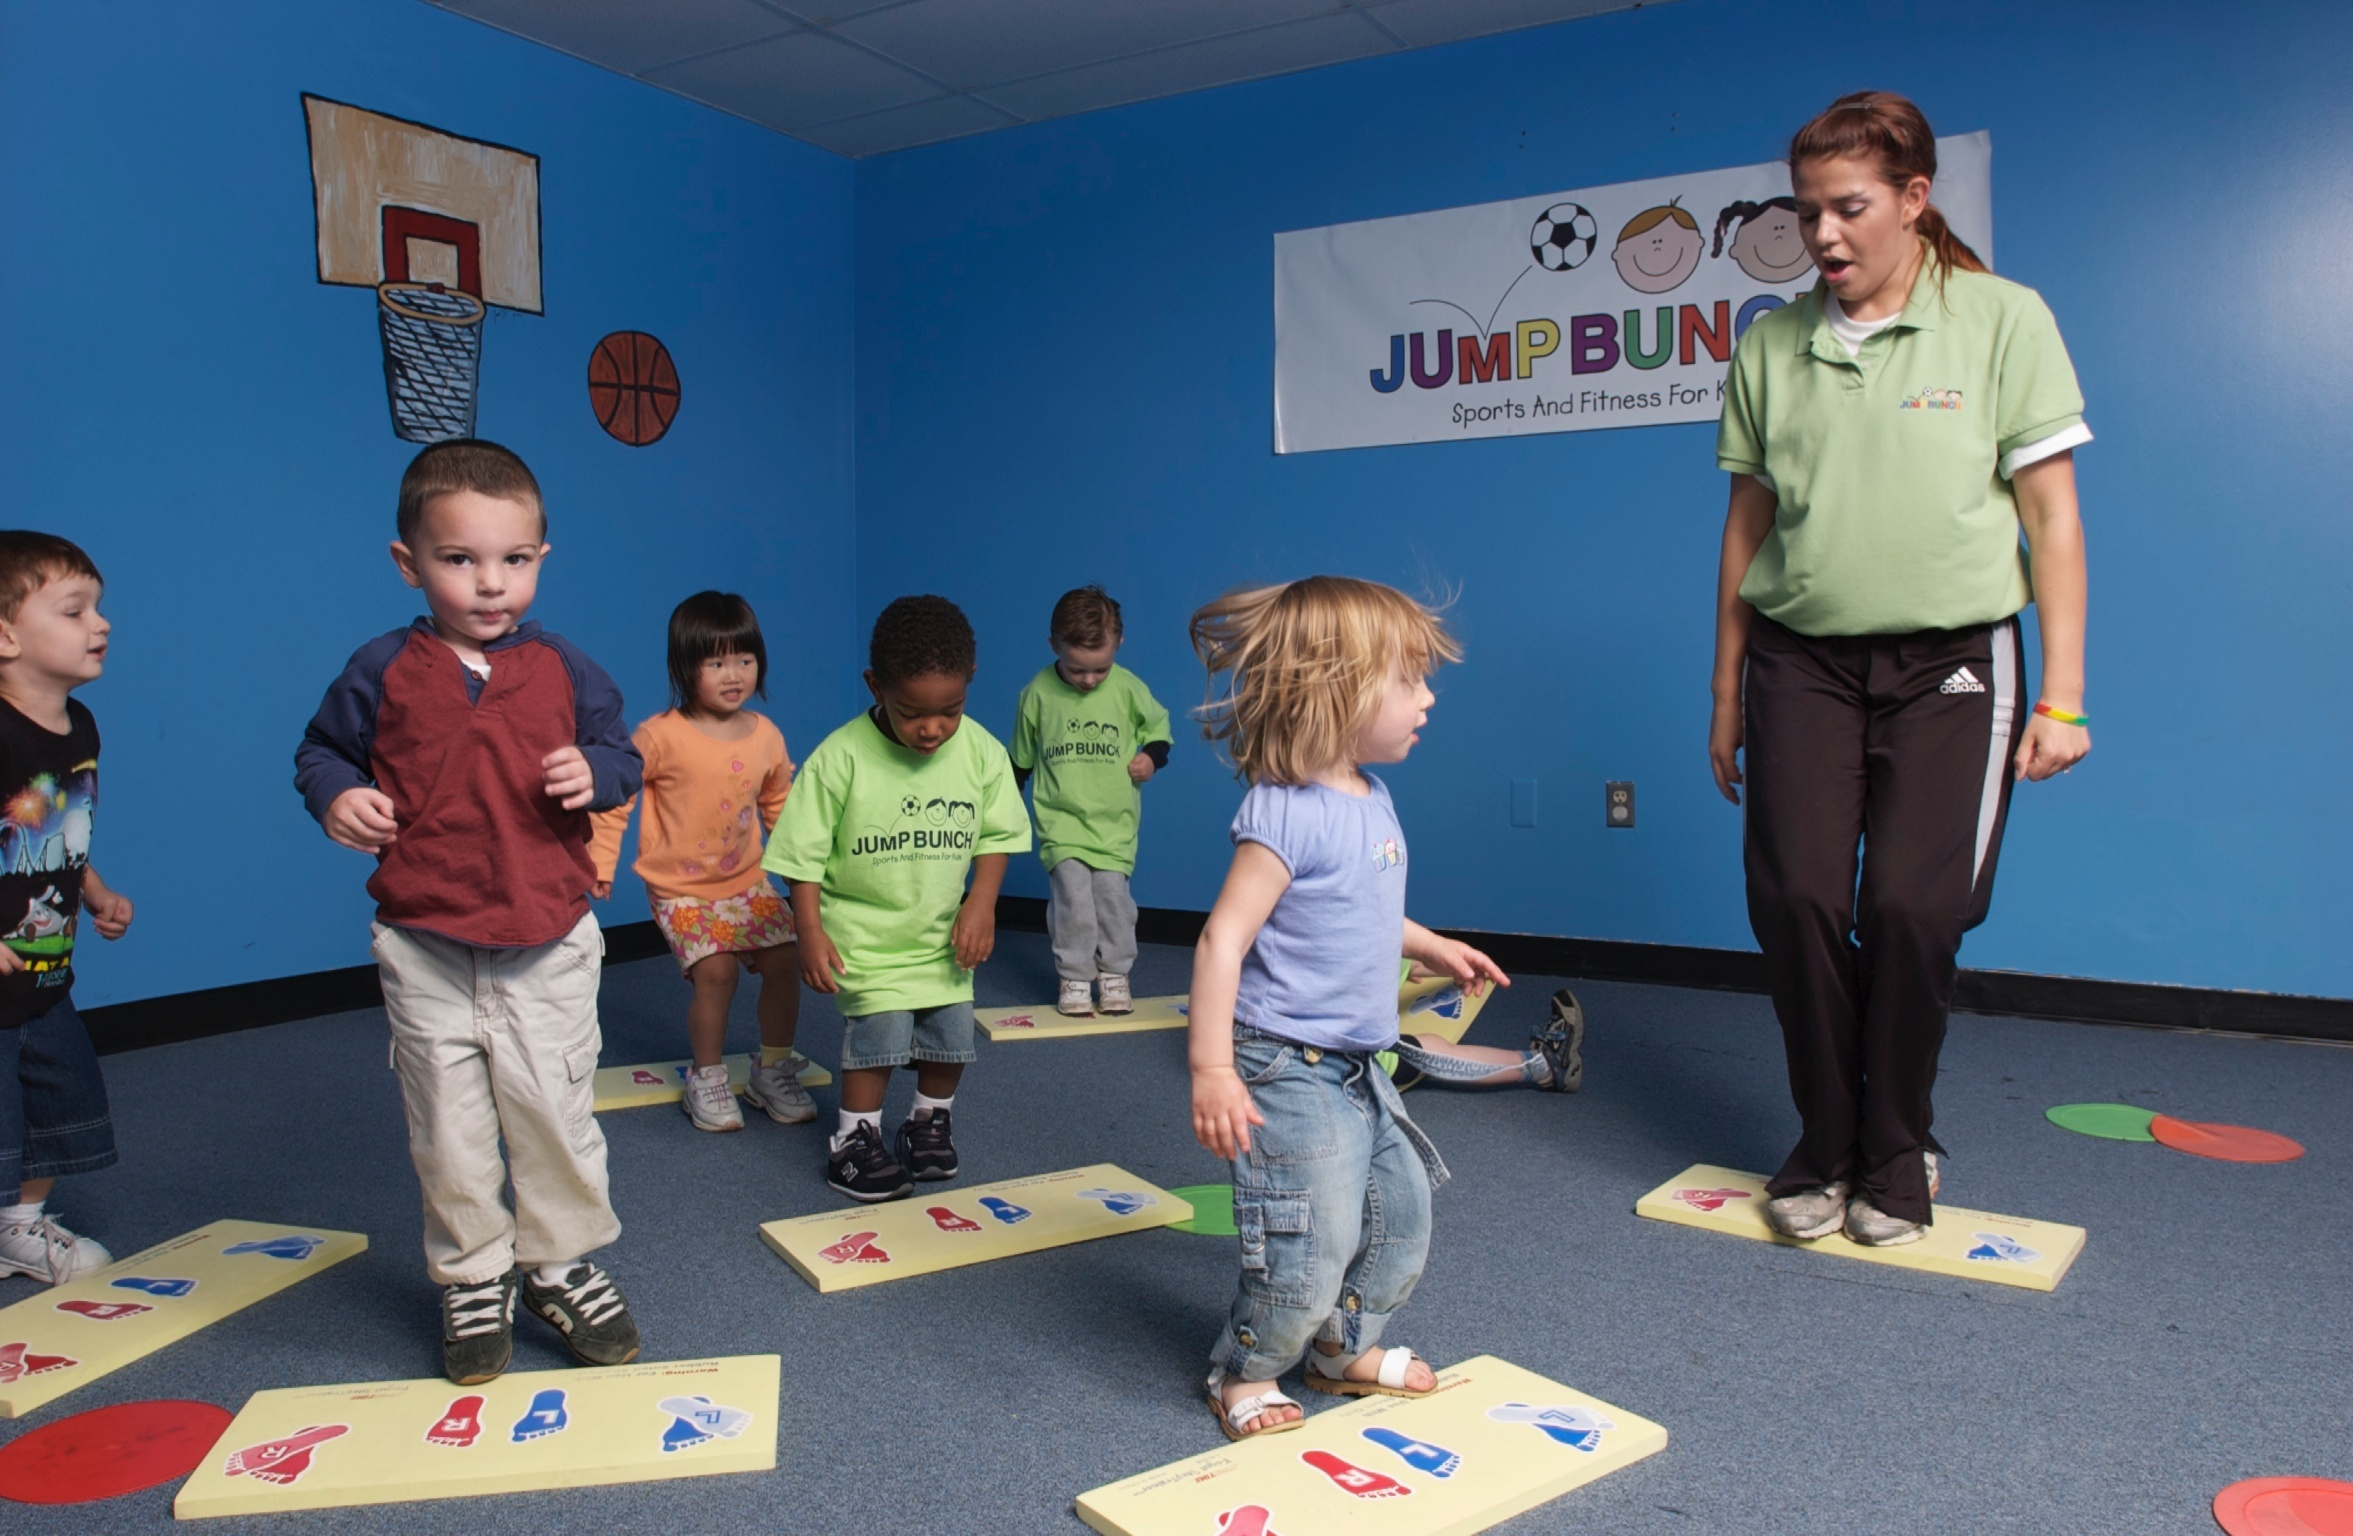 JumpBunch Colorado Springs | A Friendly Introduction to Sports and Fitness!